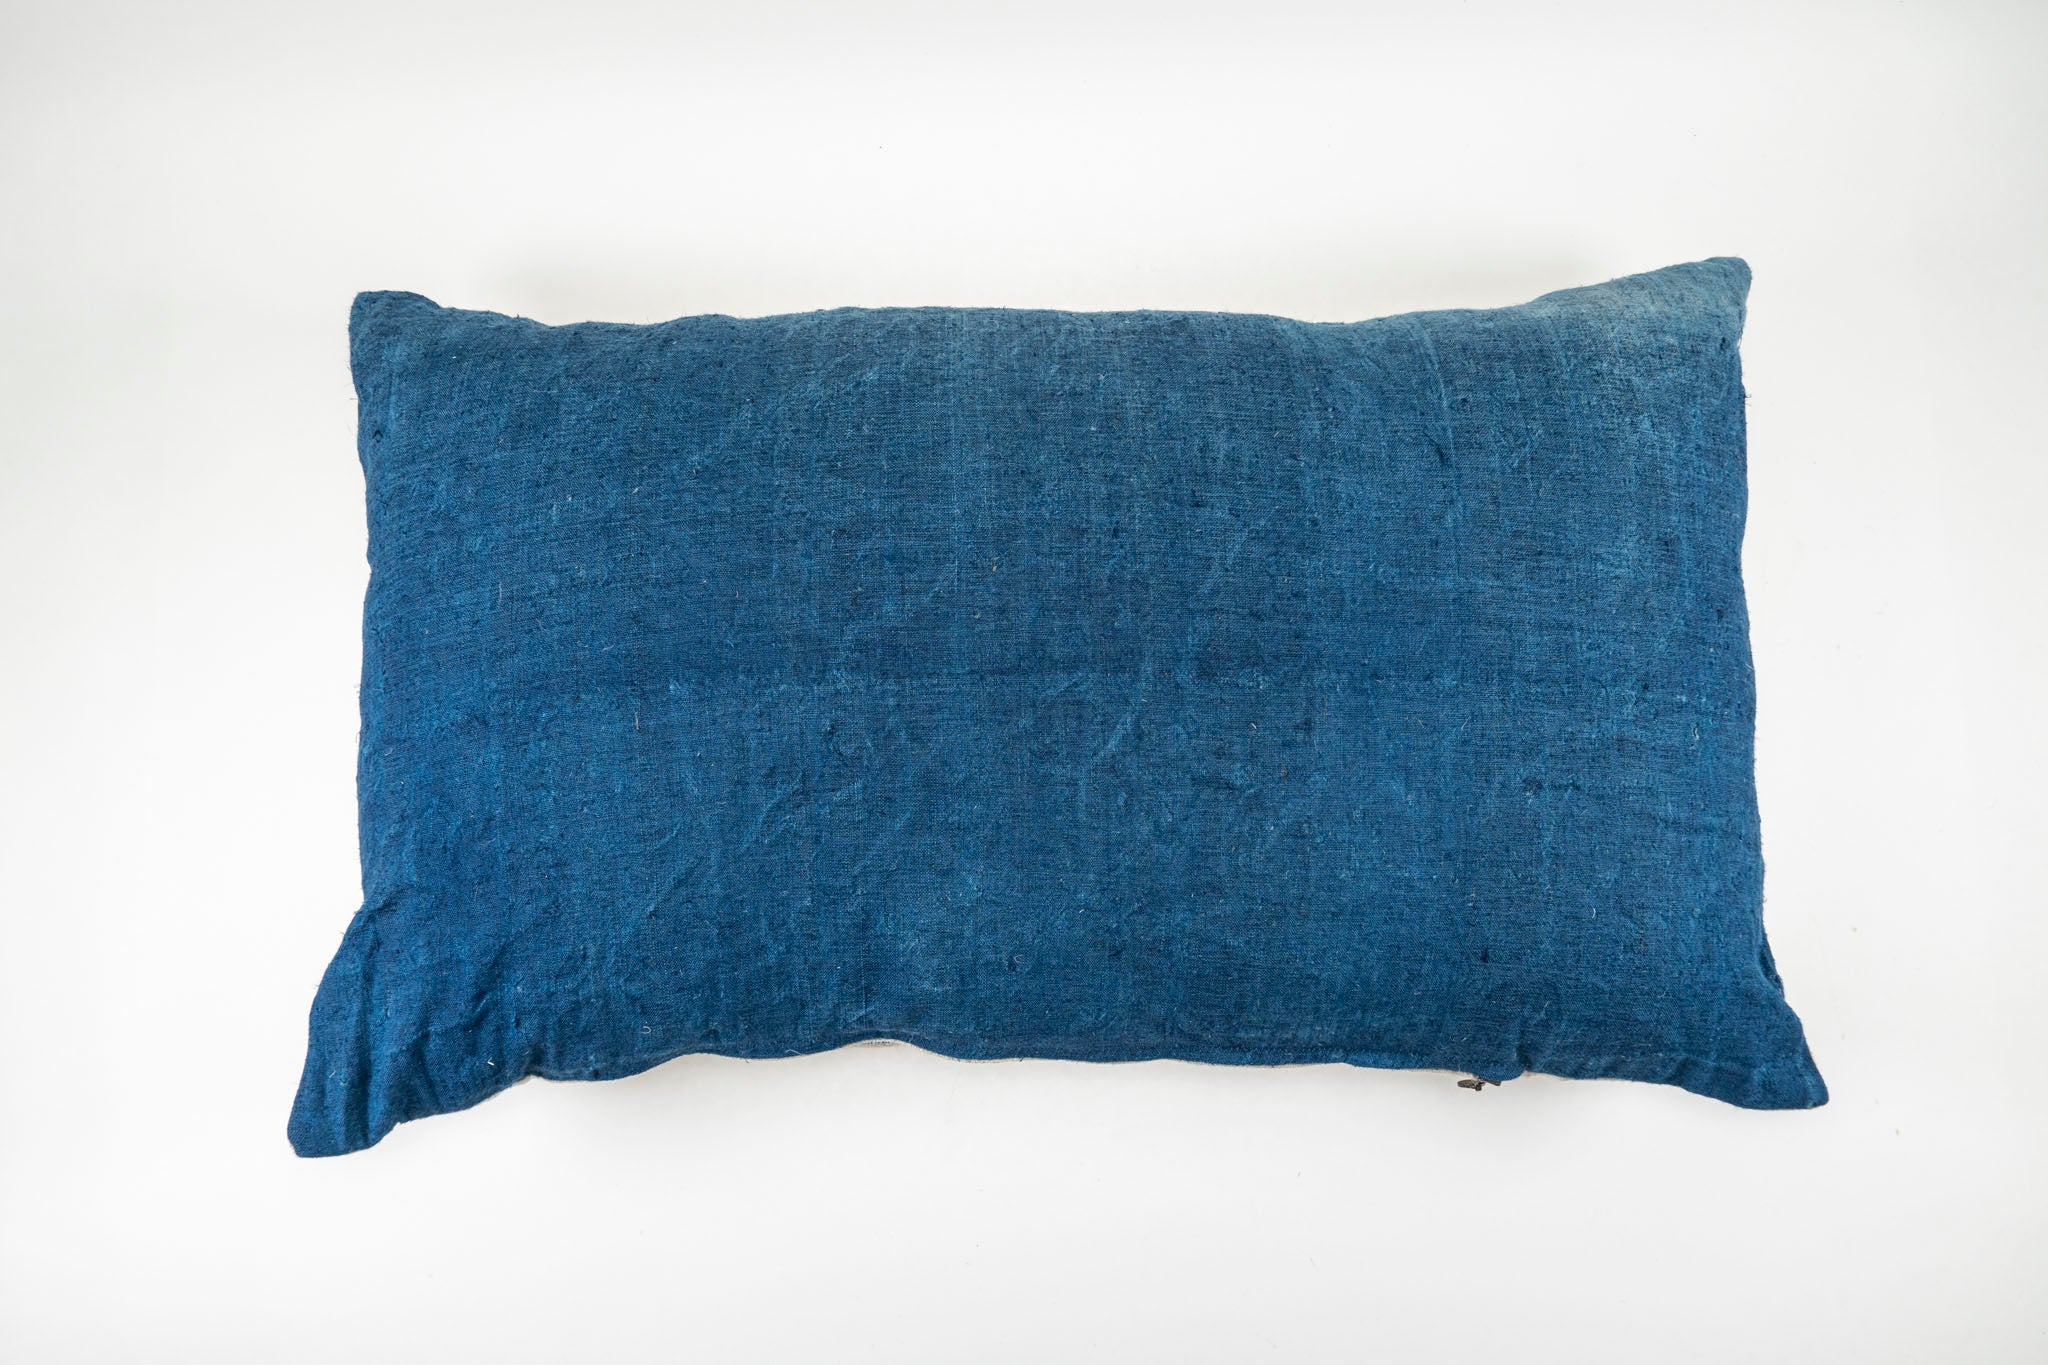 Pillow: Indigo over dyed antique handwoven hemp - P201